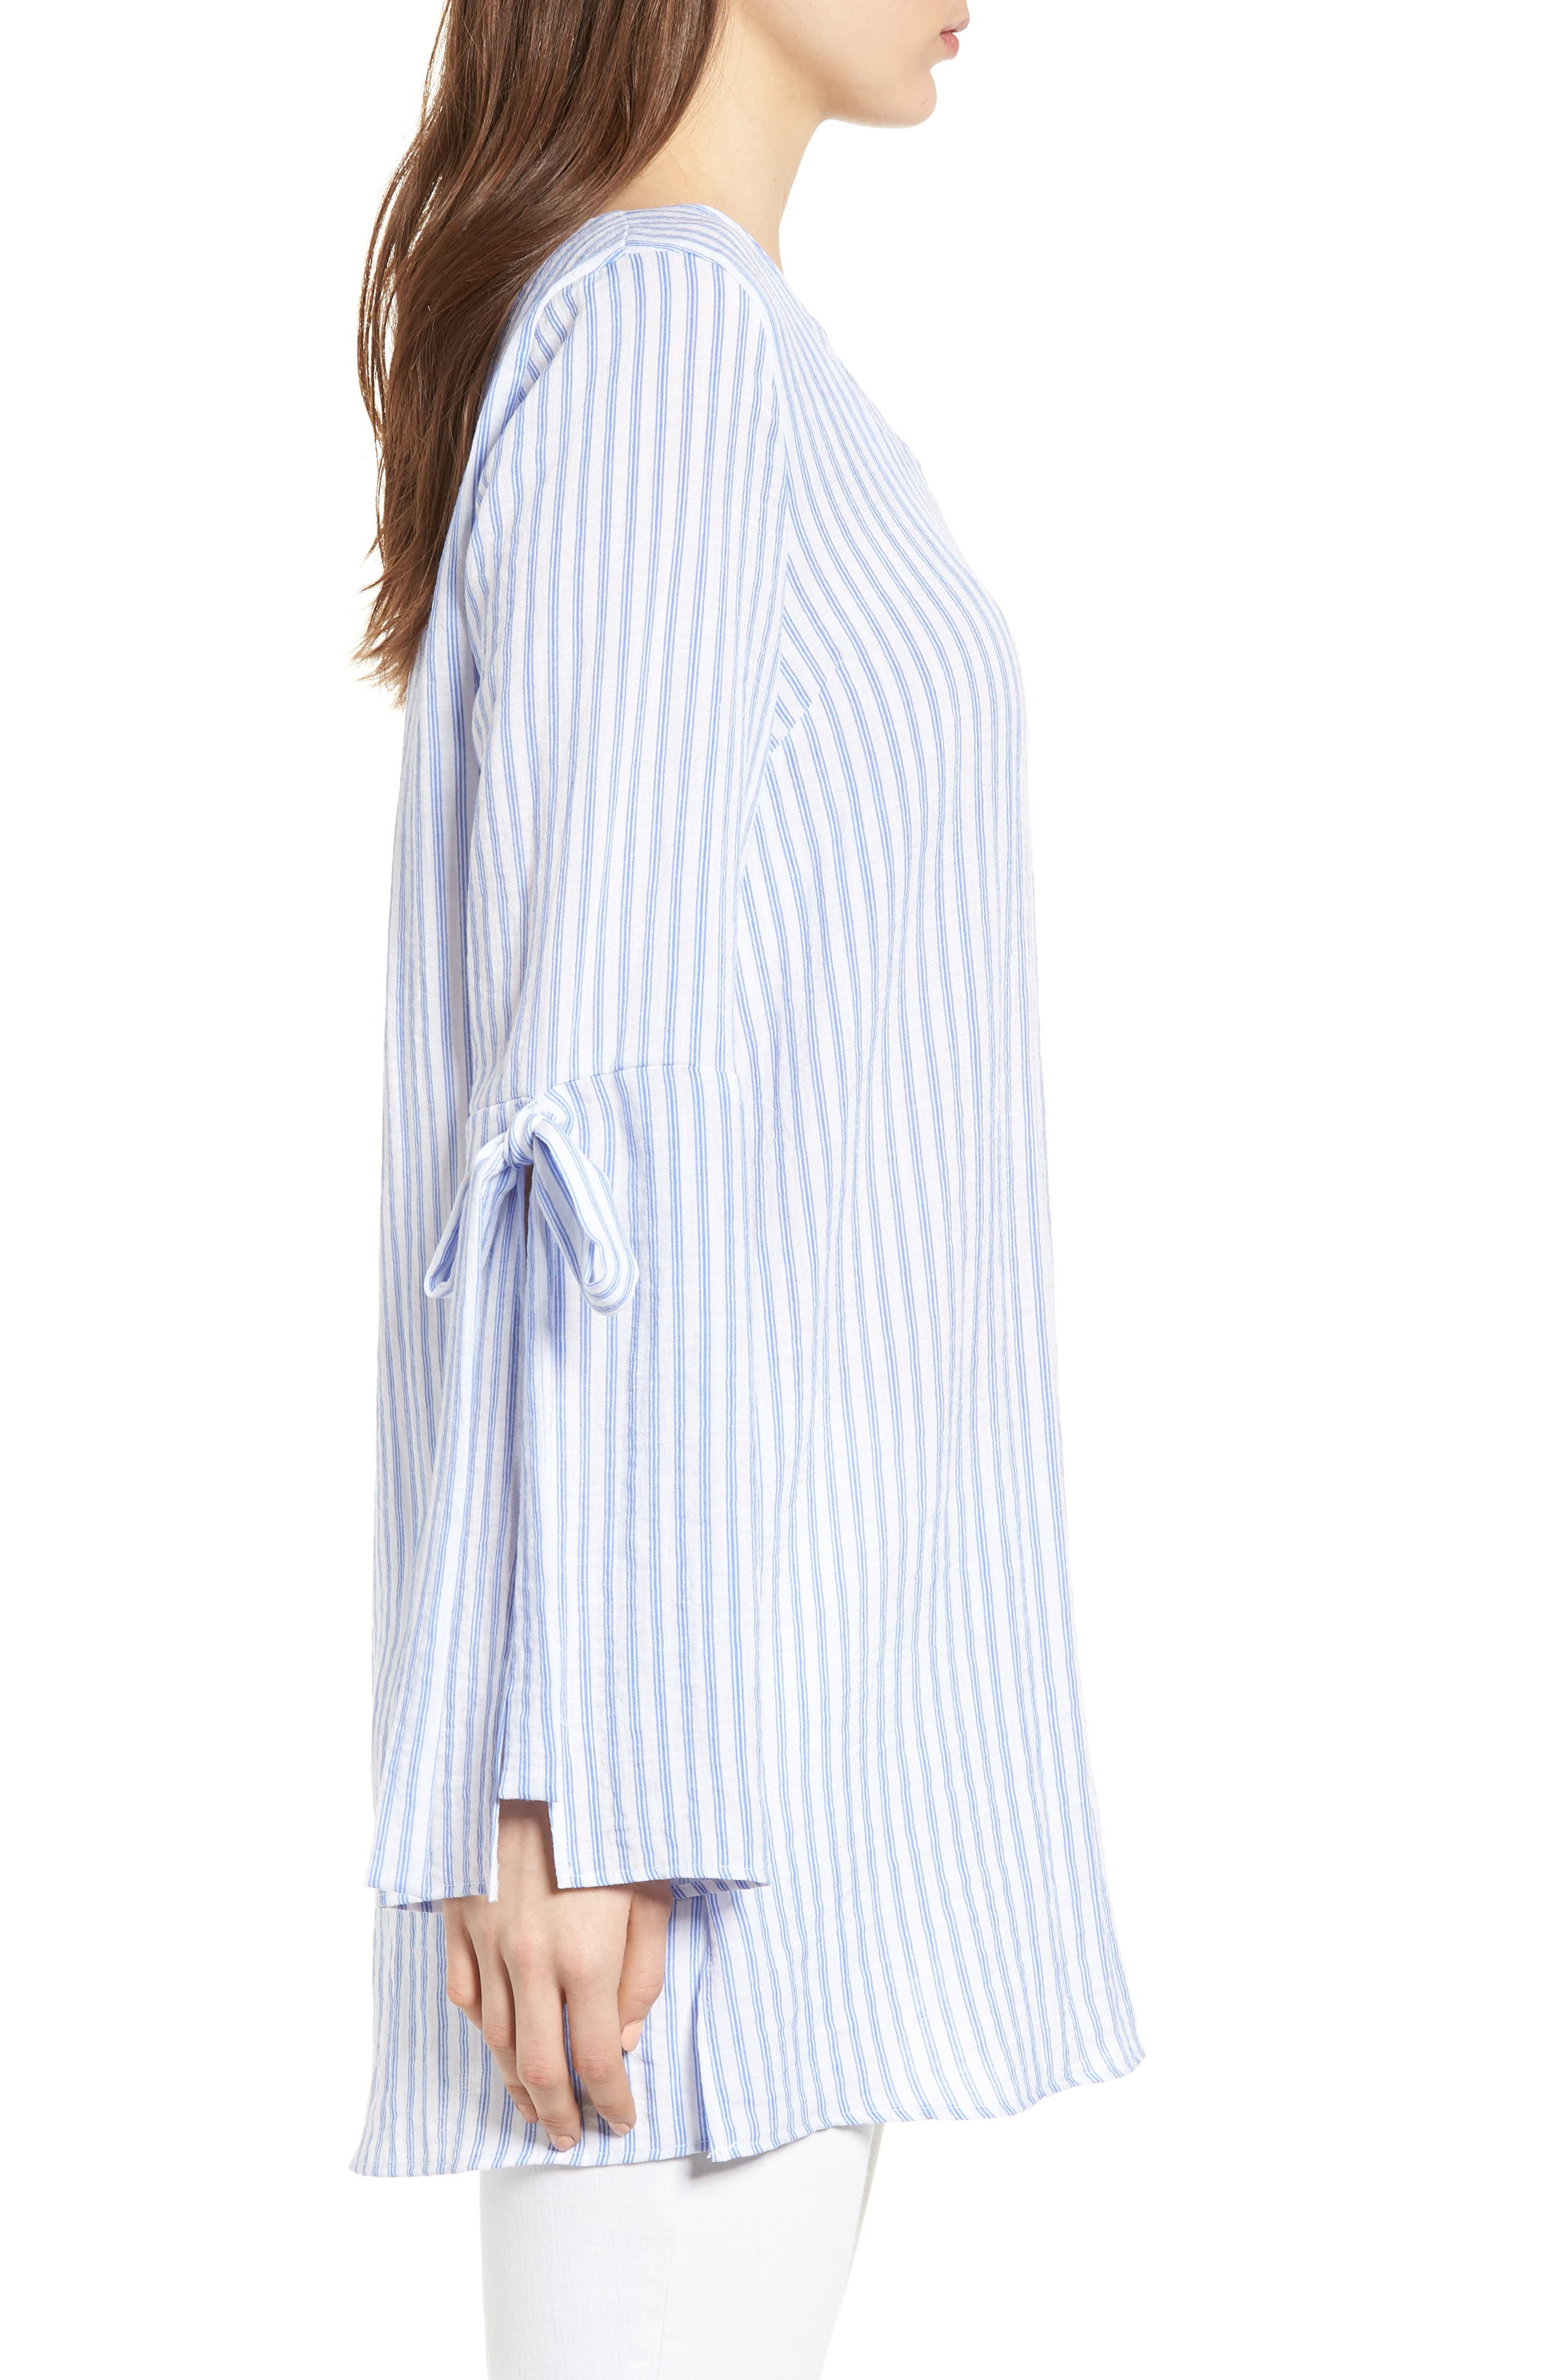 Bishop + Young Stripe Tunic Top,                             Alternate thumbnail 3, color,                             400